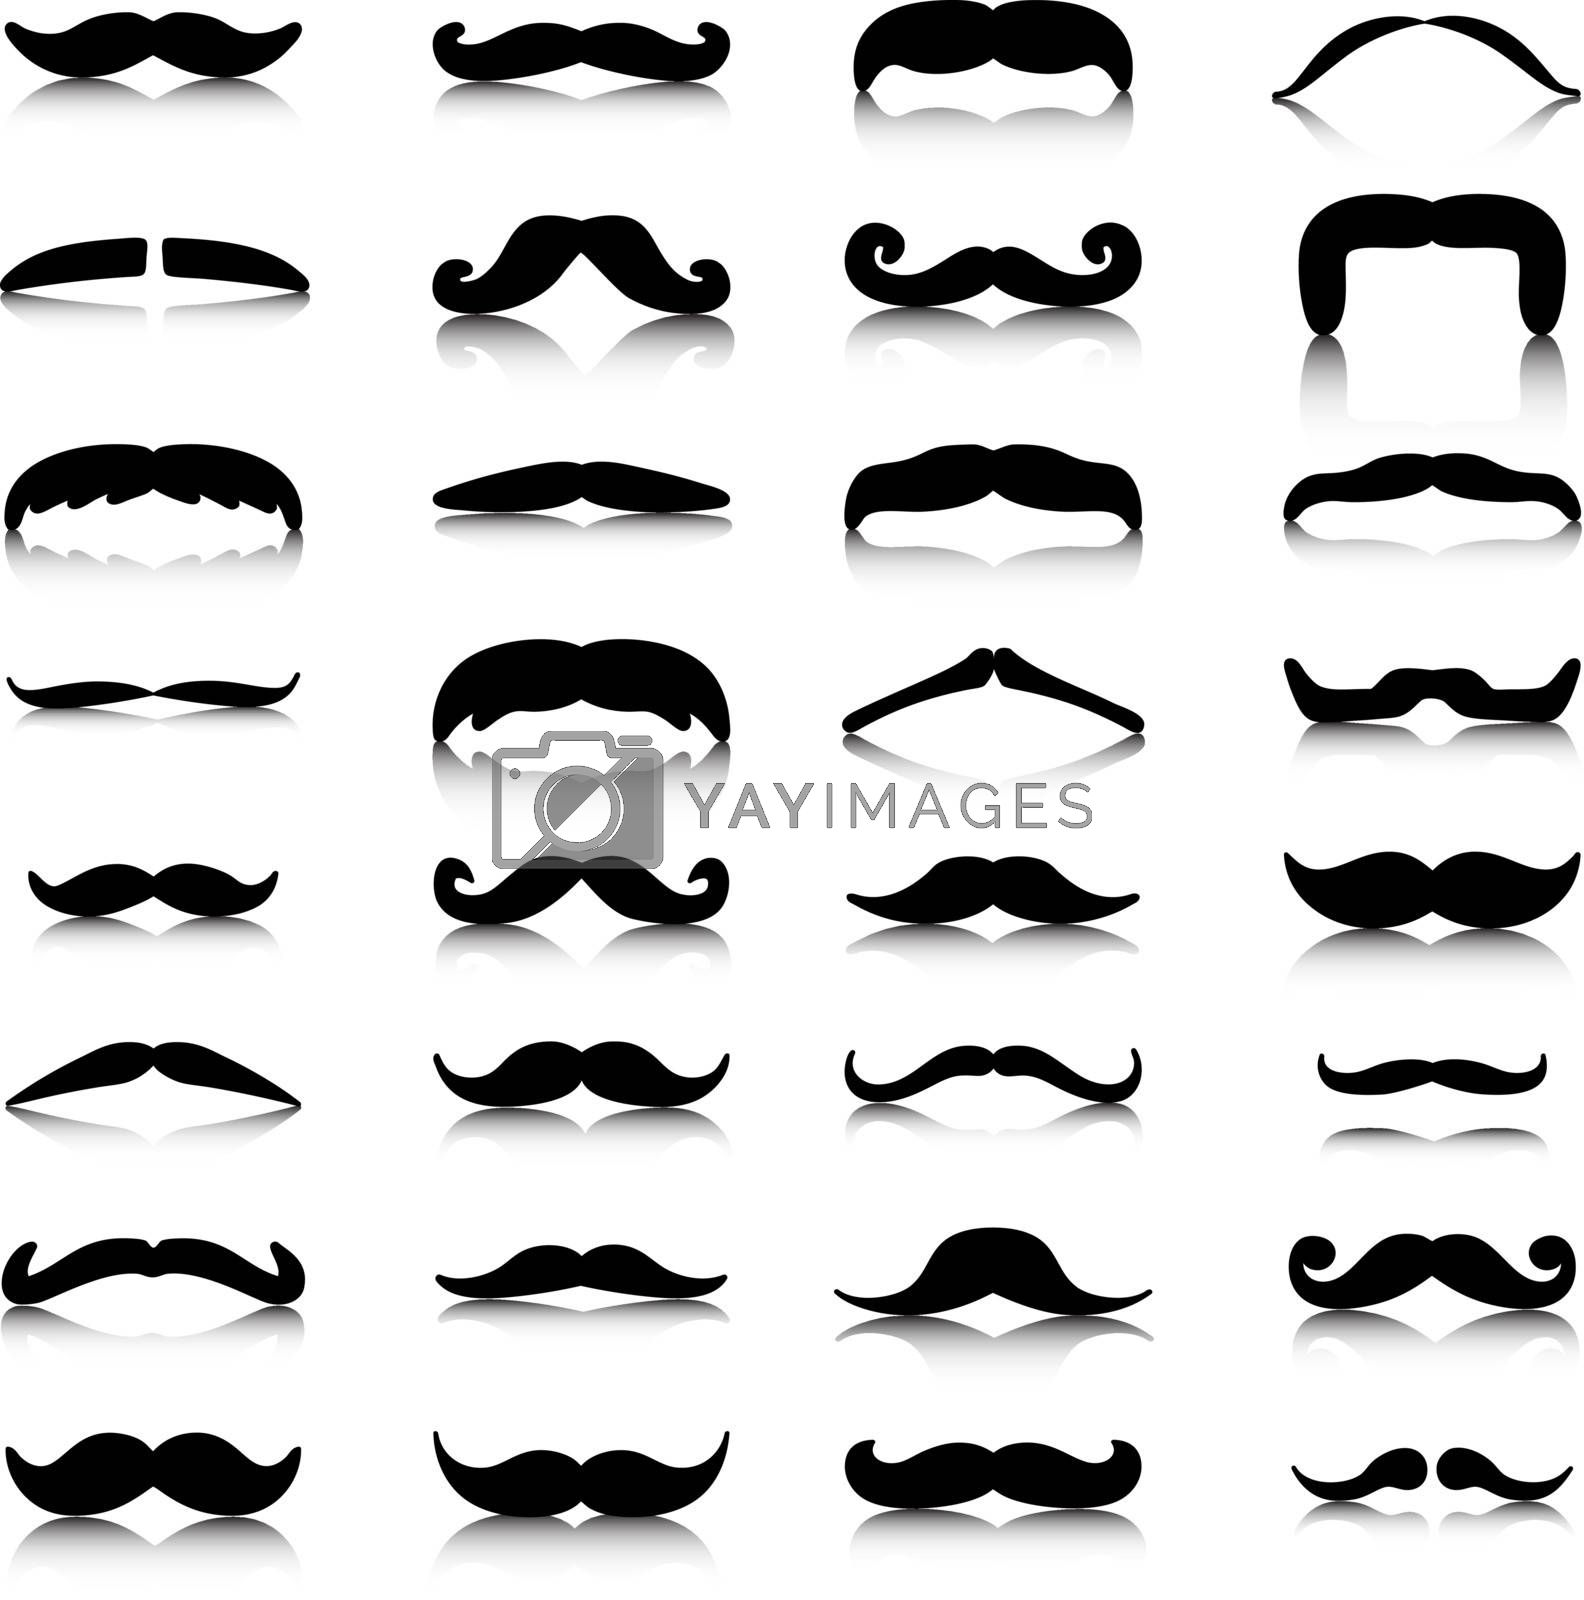 Mustaches icons set. Mustache logo. Mustache silhoutte and shadows. Isolated icons. Vector illustration, EPS 10